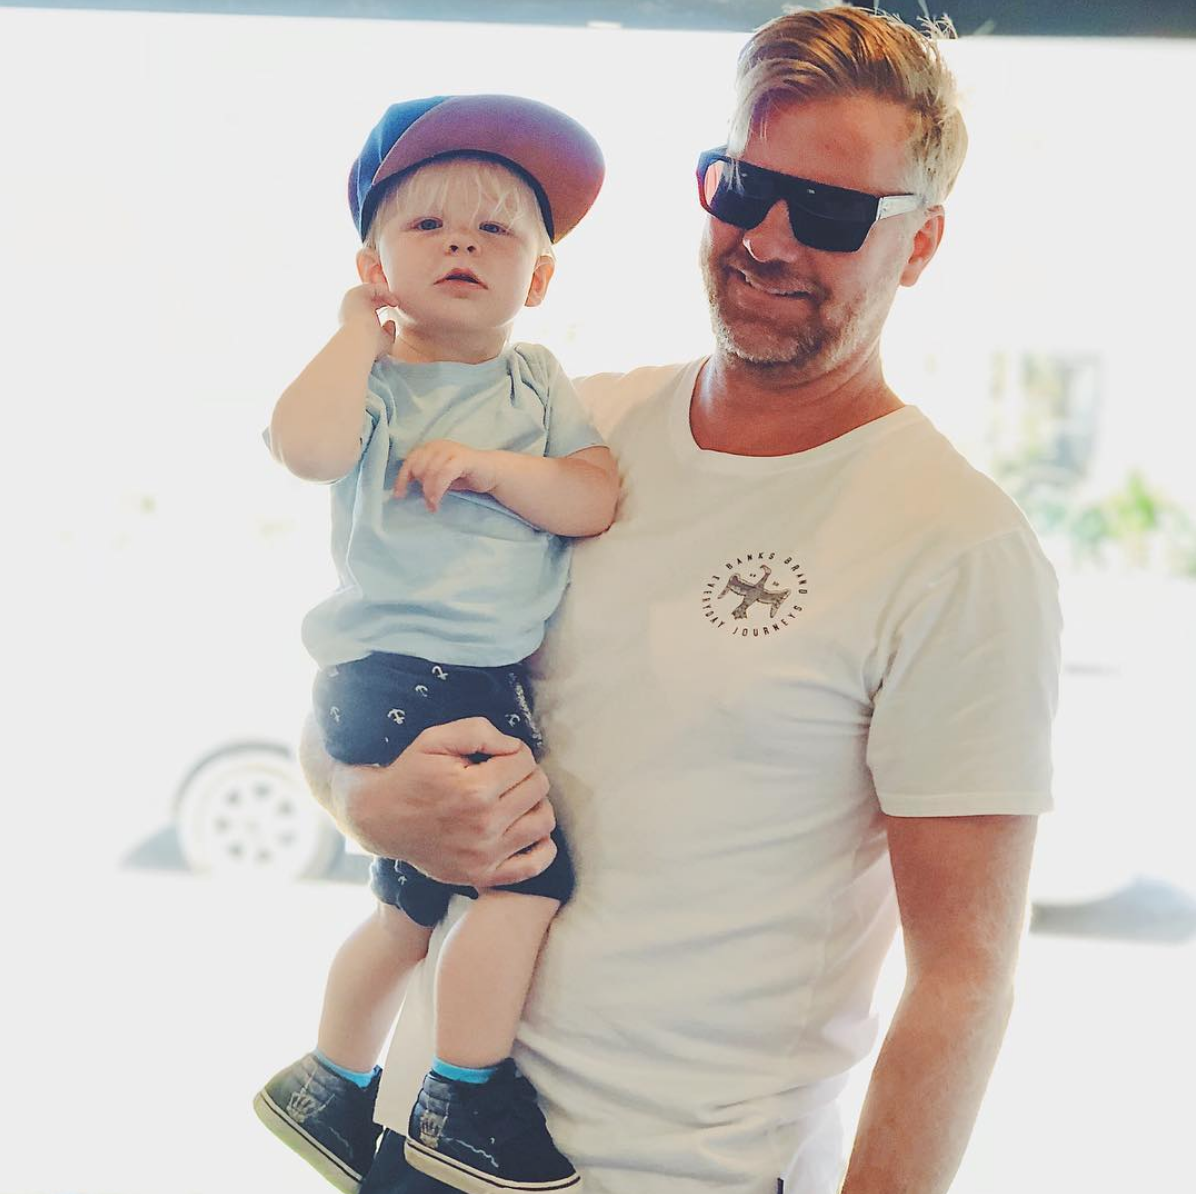 Owner, Jay Lewis, and his son